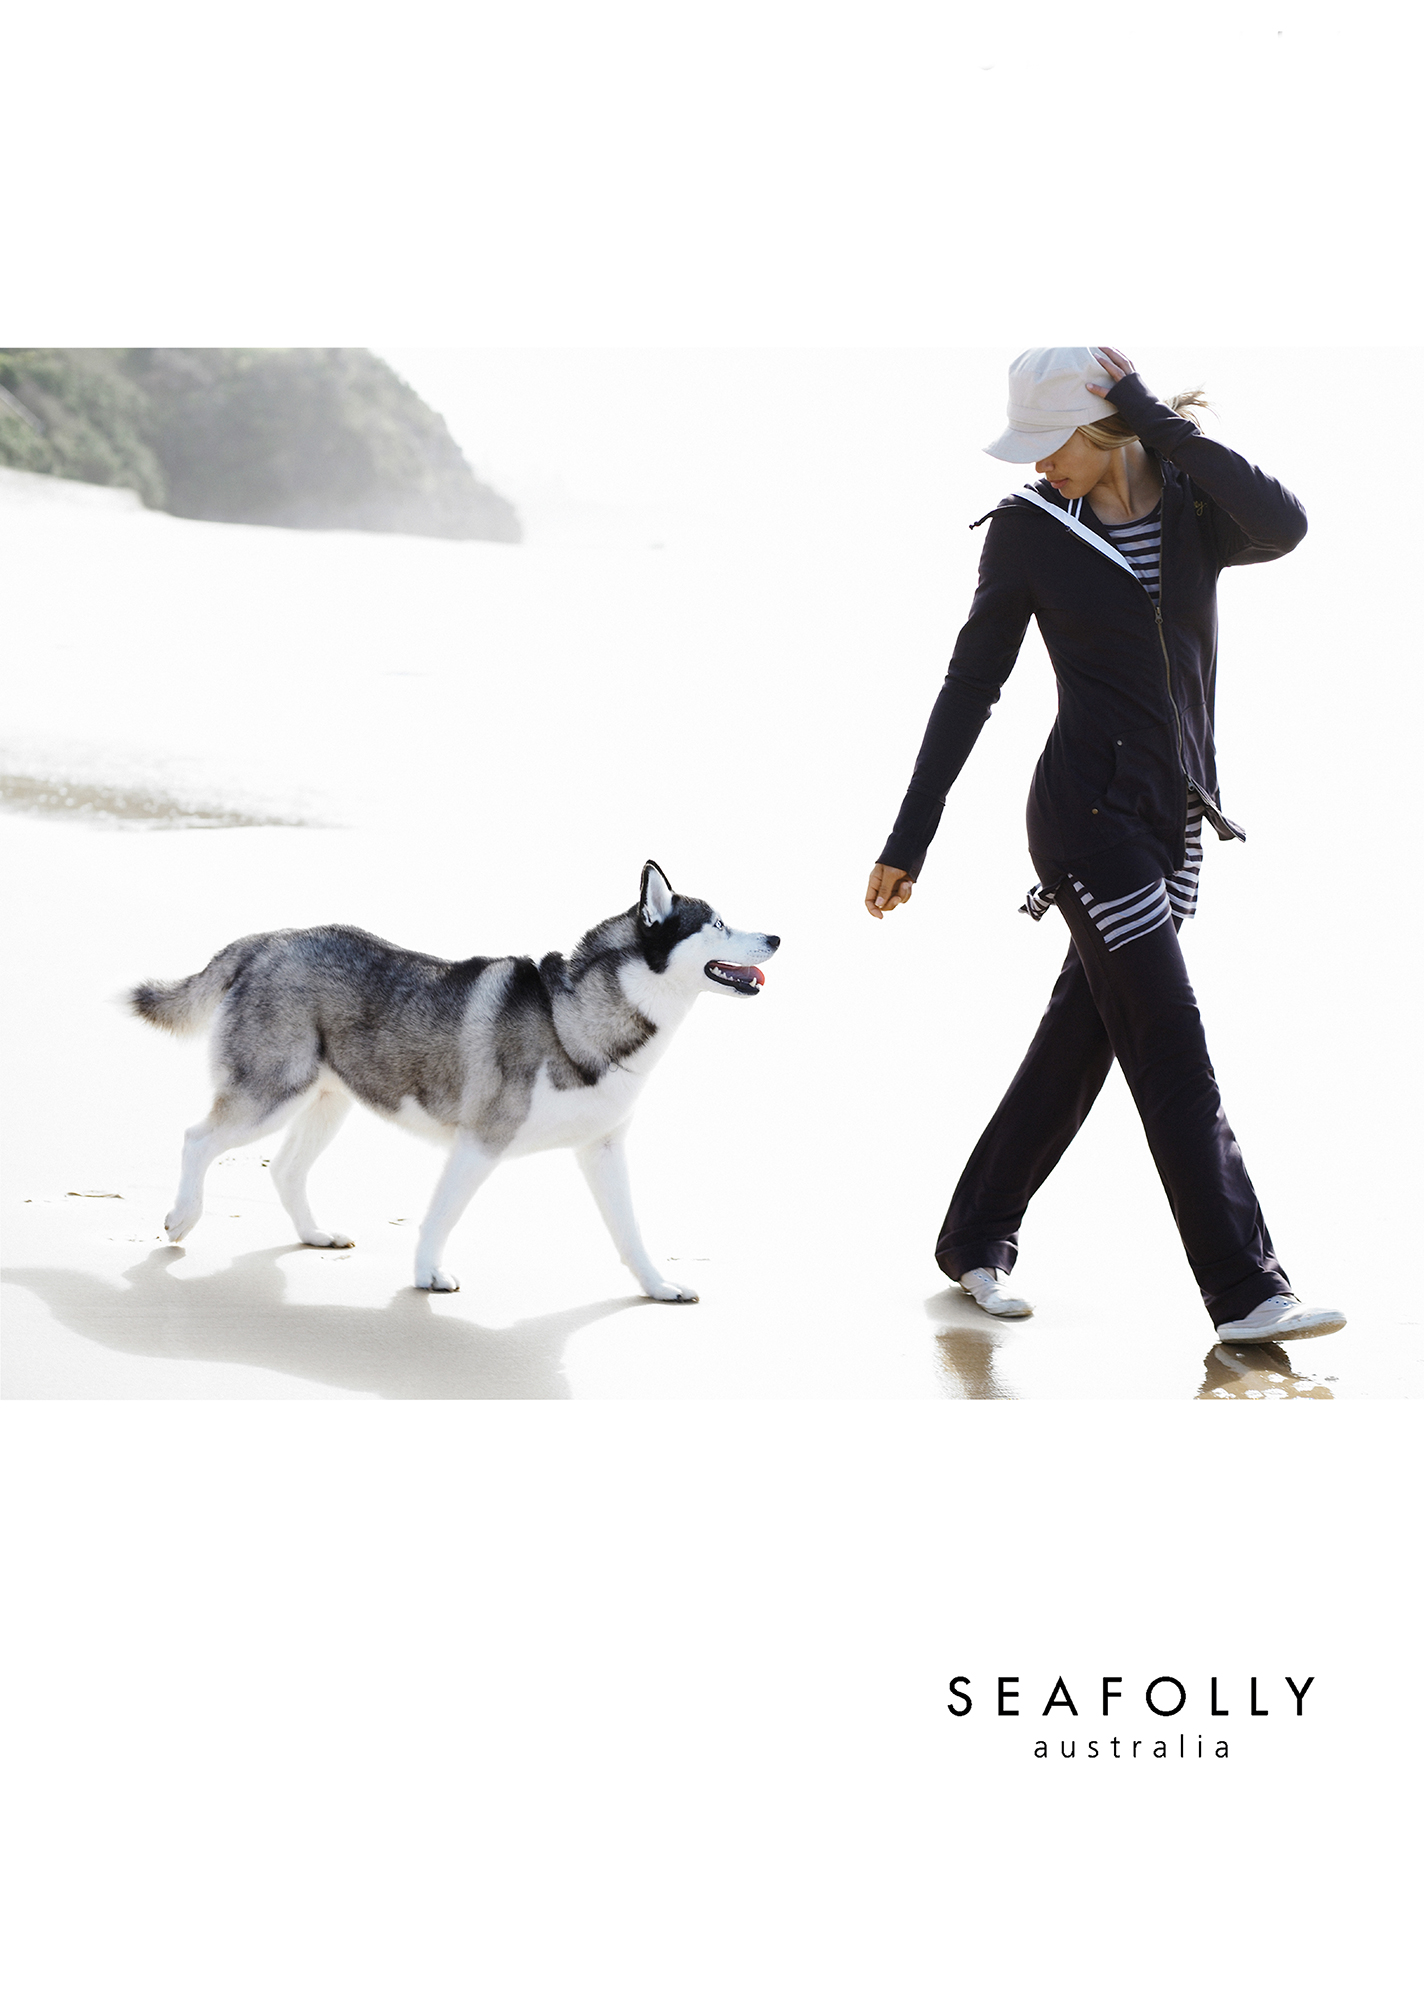 SEAFOLLY 2008